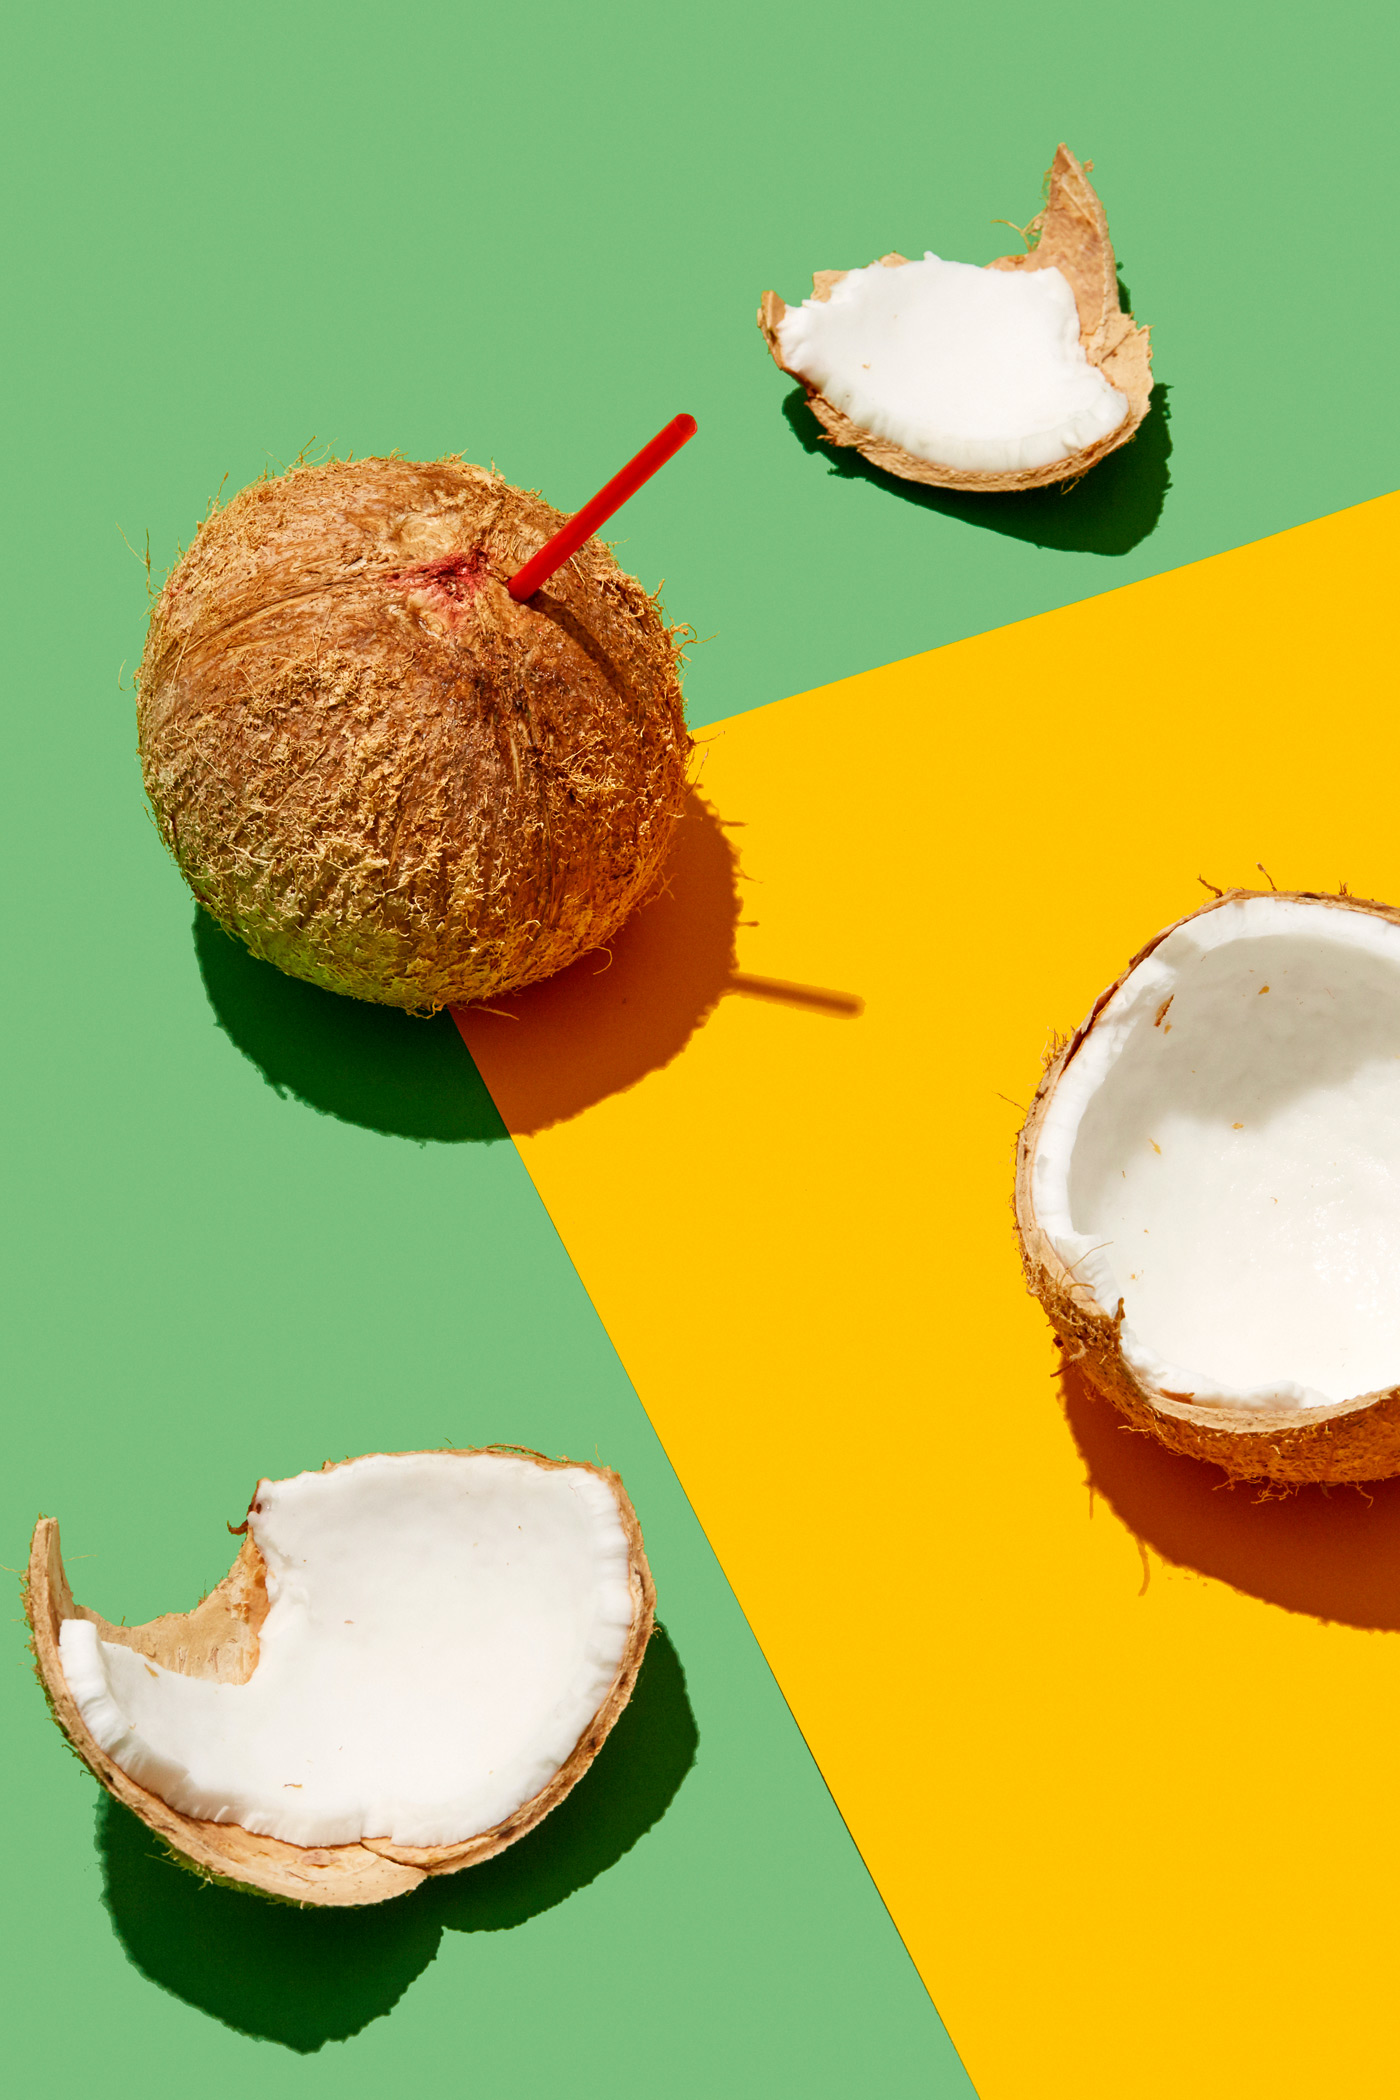 healthiest foods, health food, diet, nutrition, time.com stock, coconut